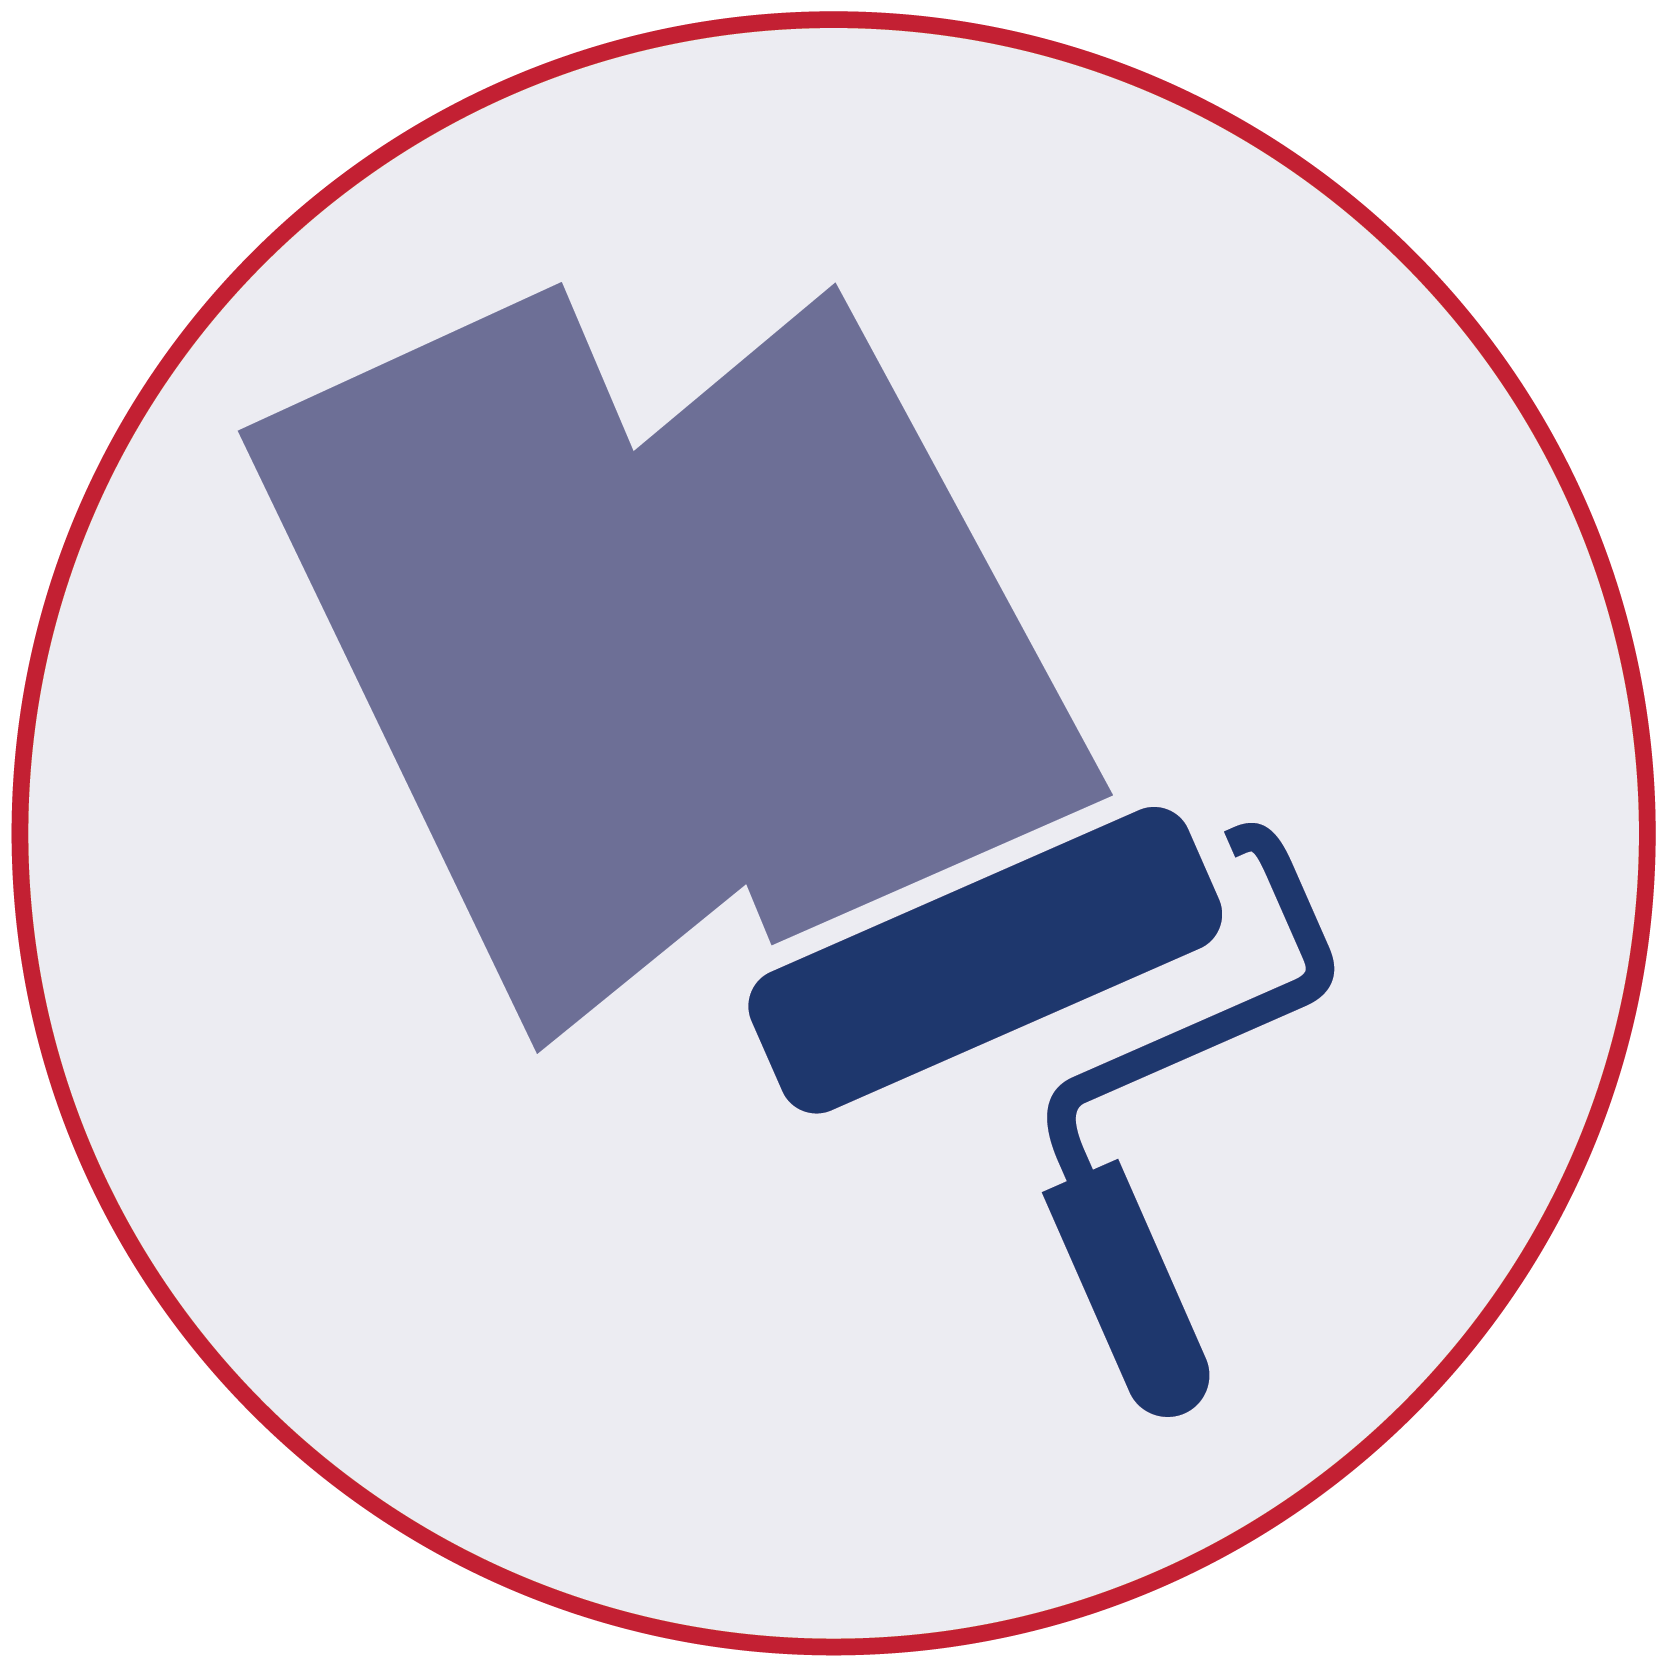 Blue icon of paint roller and primer